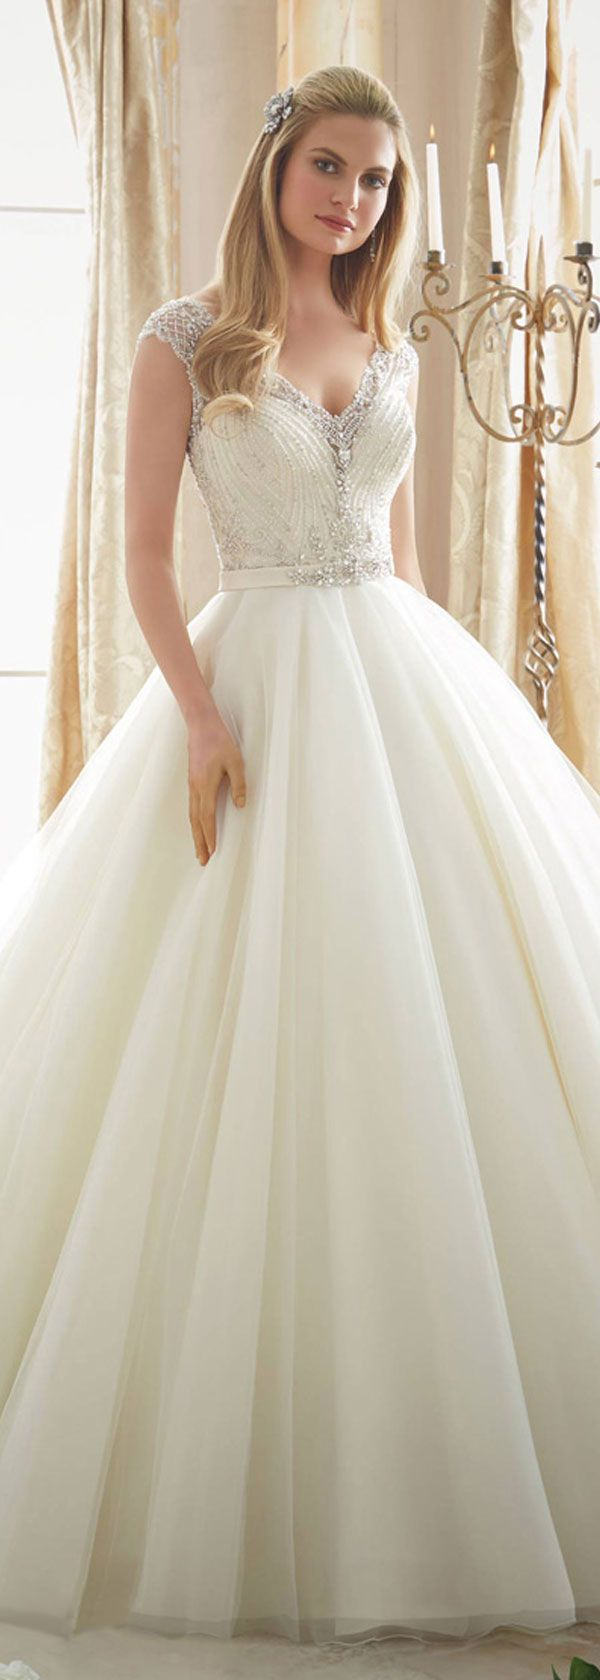 Fabulous Tulle V-Neck Neckline Ball Gown Wedding Dresses With Beaded Embroidery